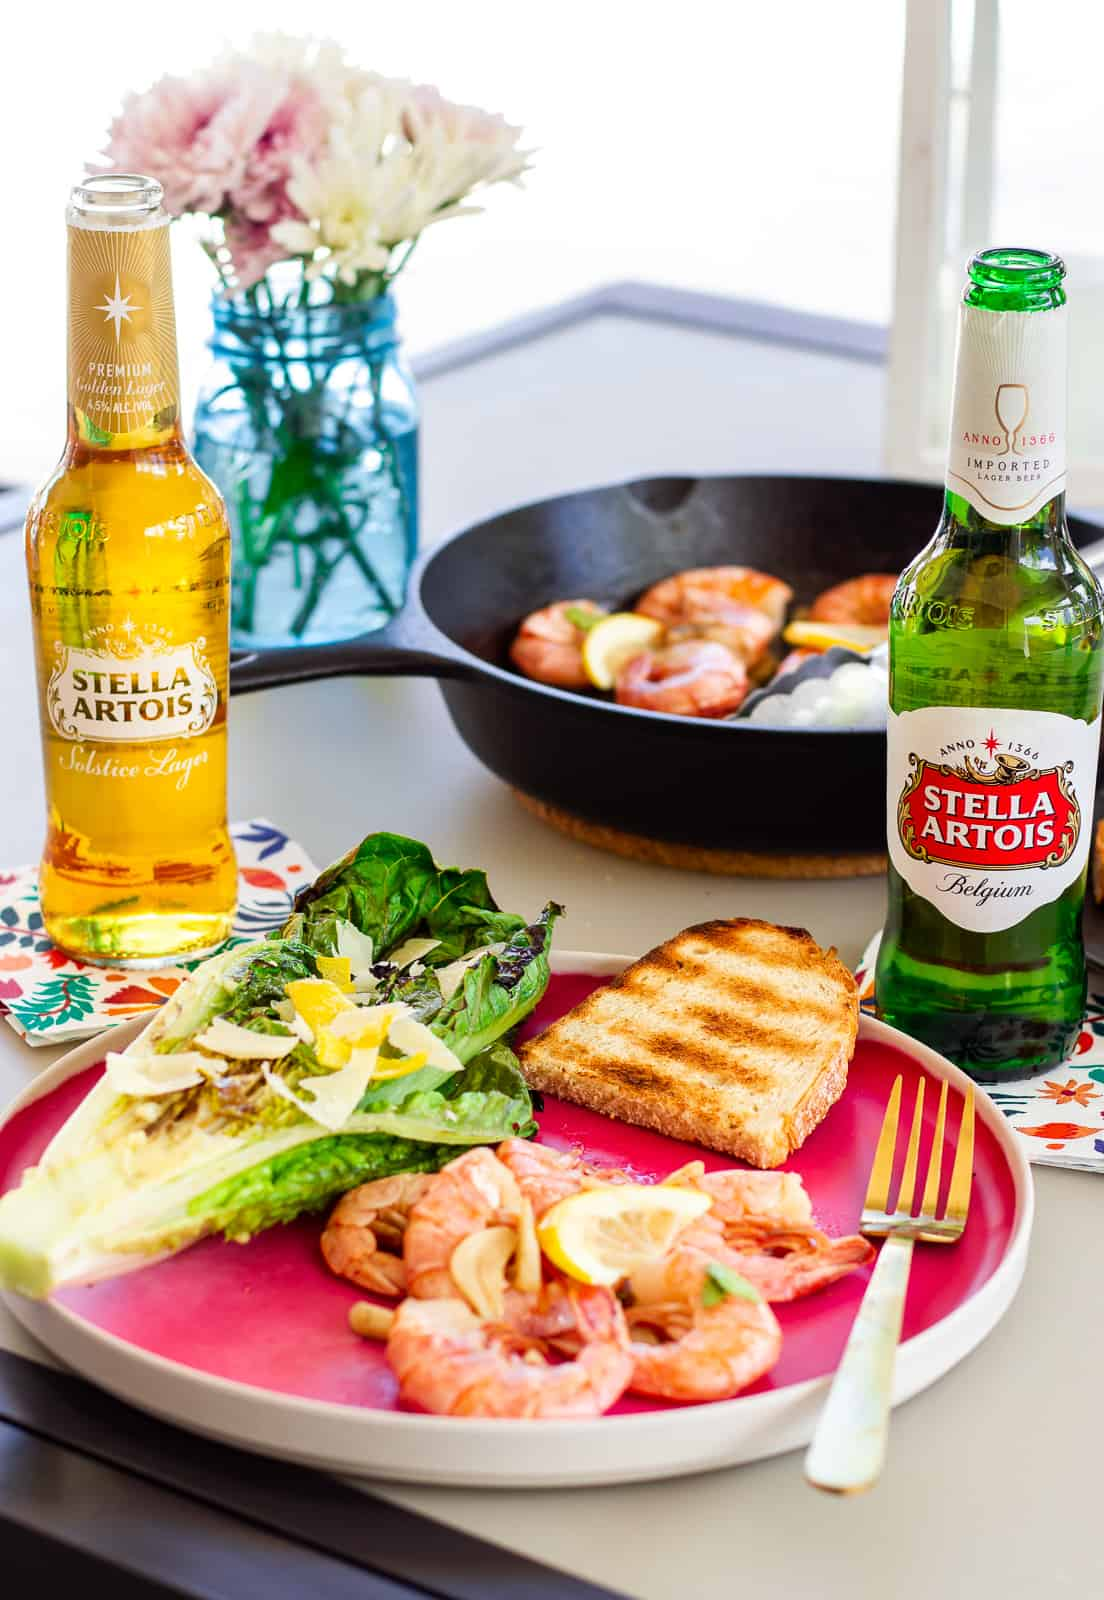 Pink plate with shrimp, slice of grilled bread, halved grilled romaine, and 2 bottles of Stella Artois Beer.